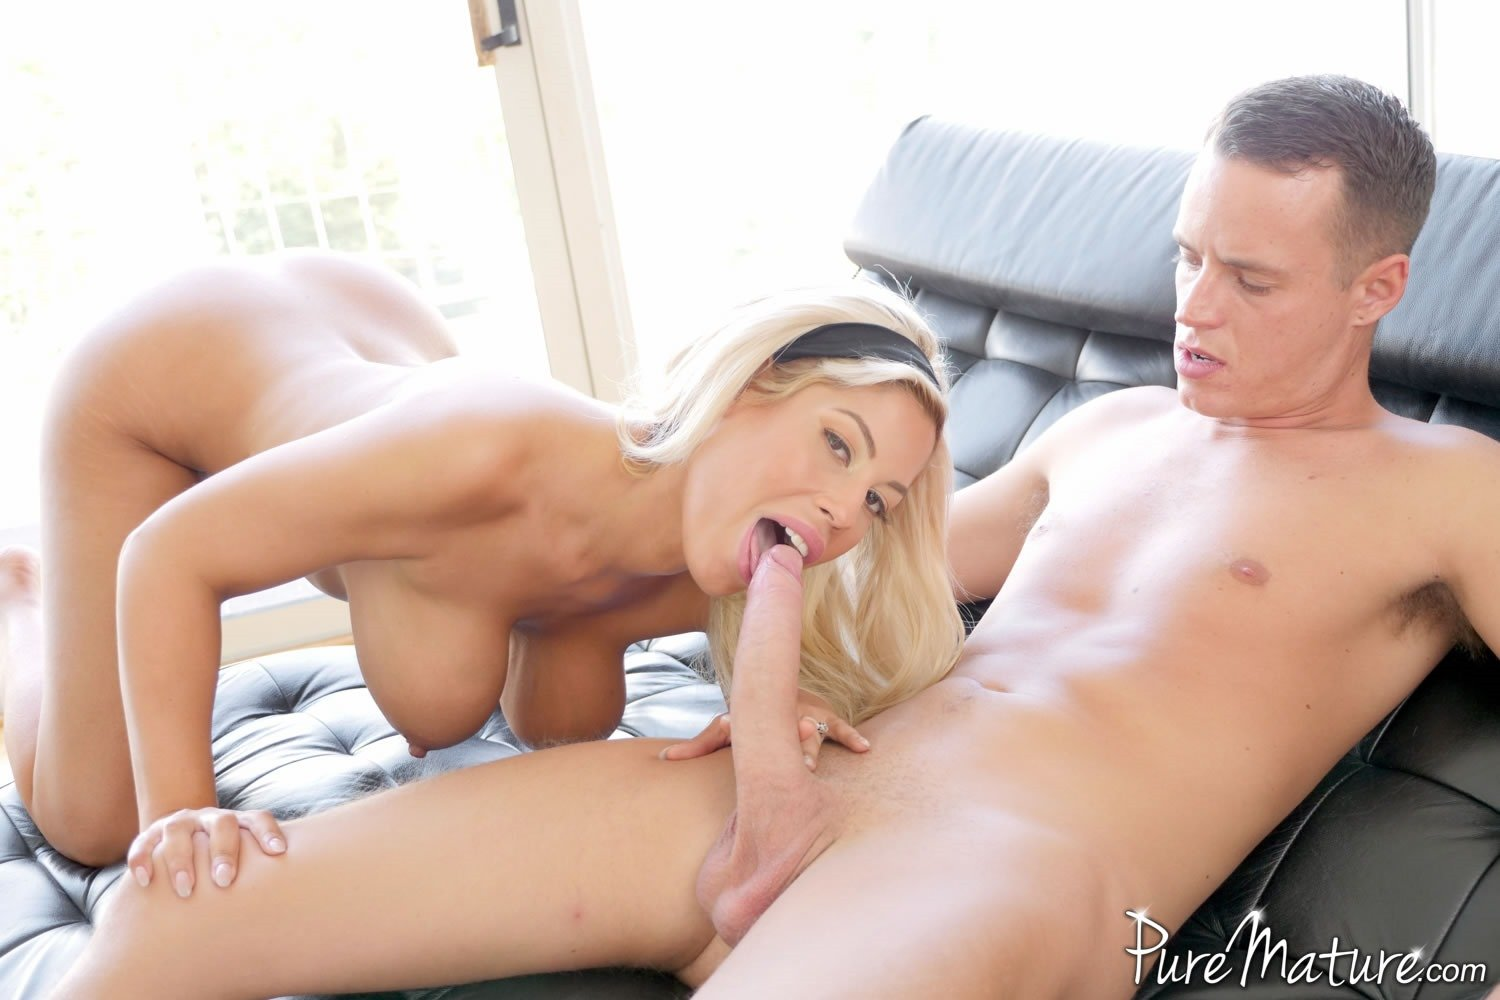 Puremature horny milf makes online hookup with stud 10